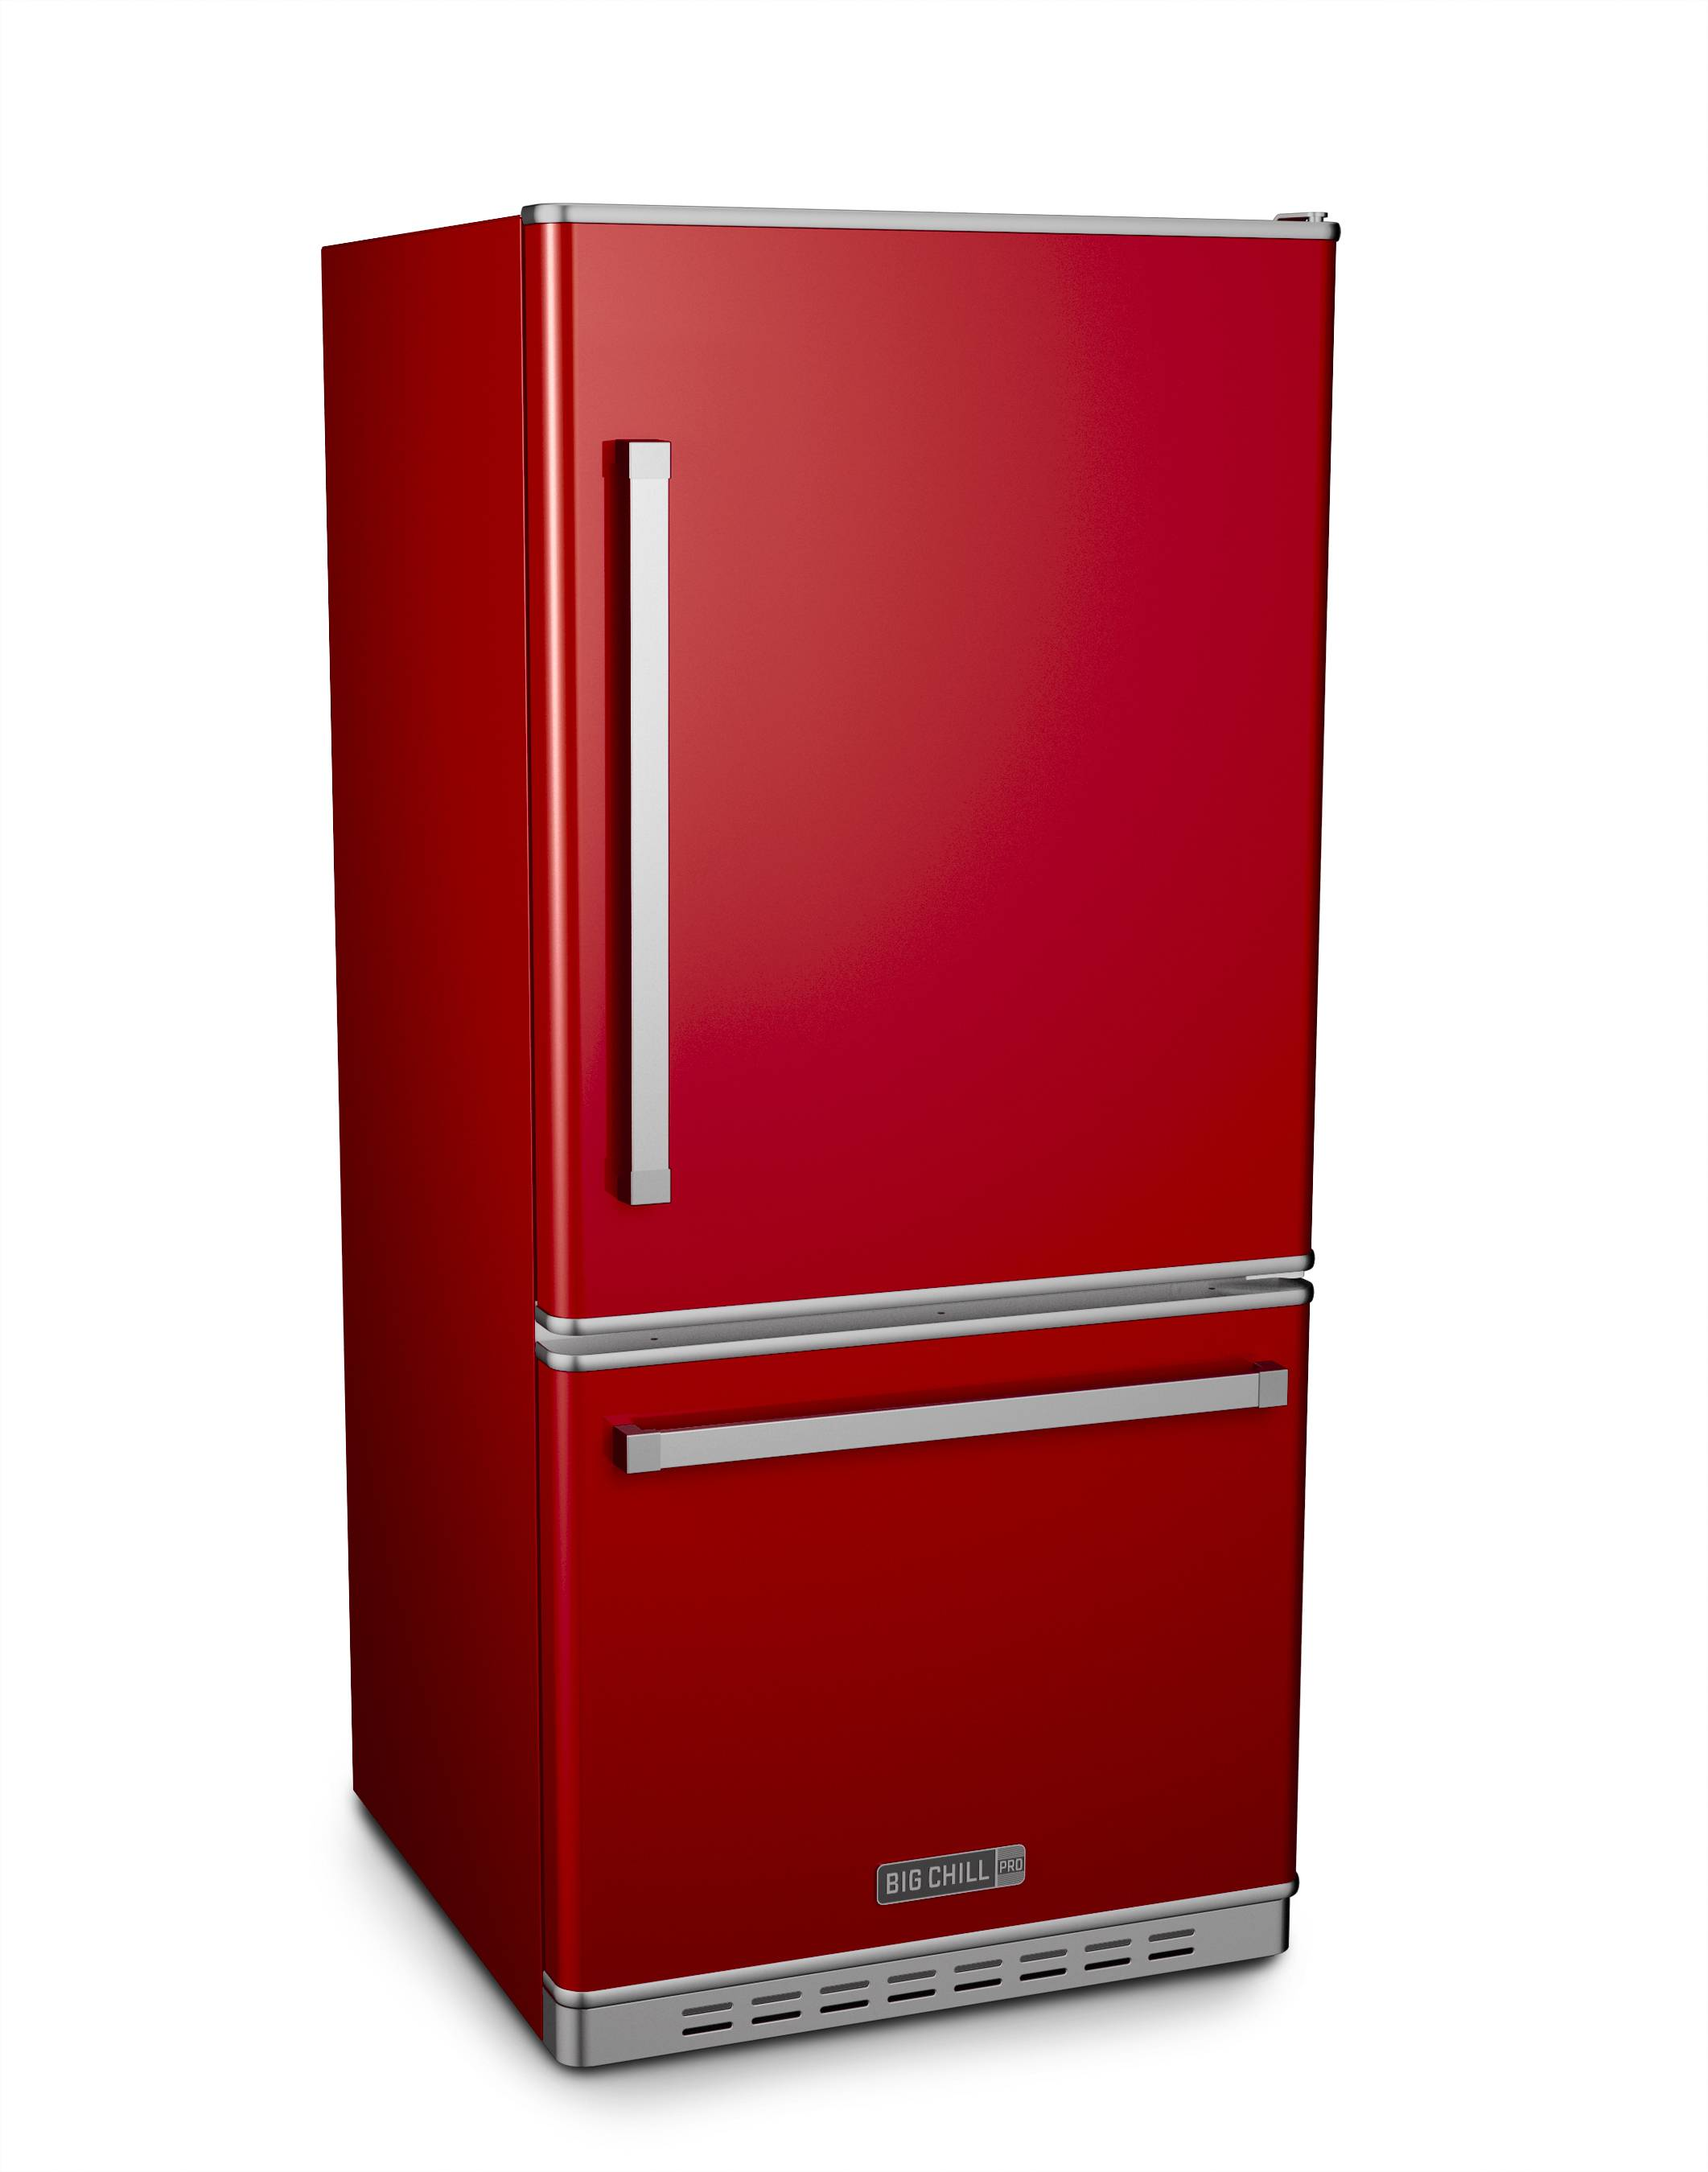 This Pro refrigerator comes in cherry red from Big Chill's new Pro line that offers contemporary style with 12 standard color options.